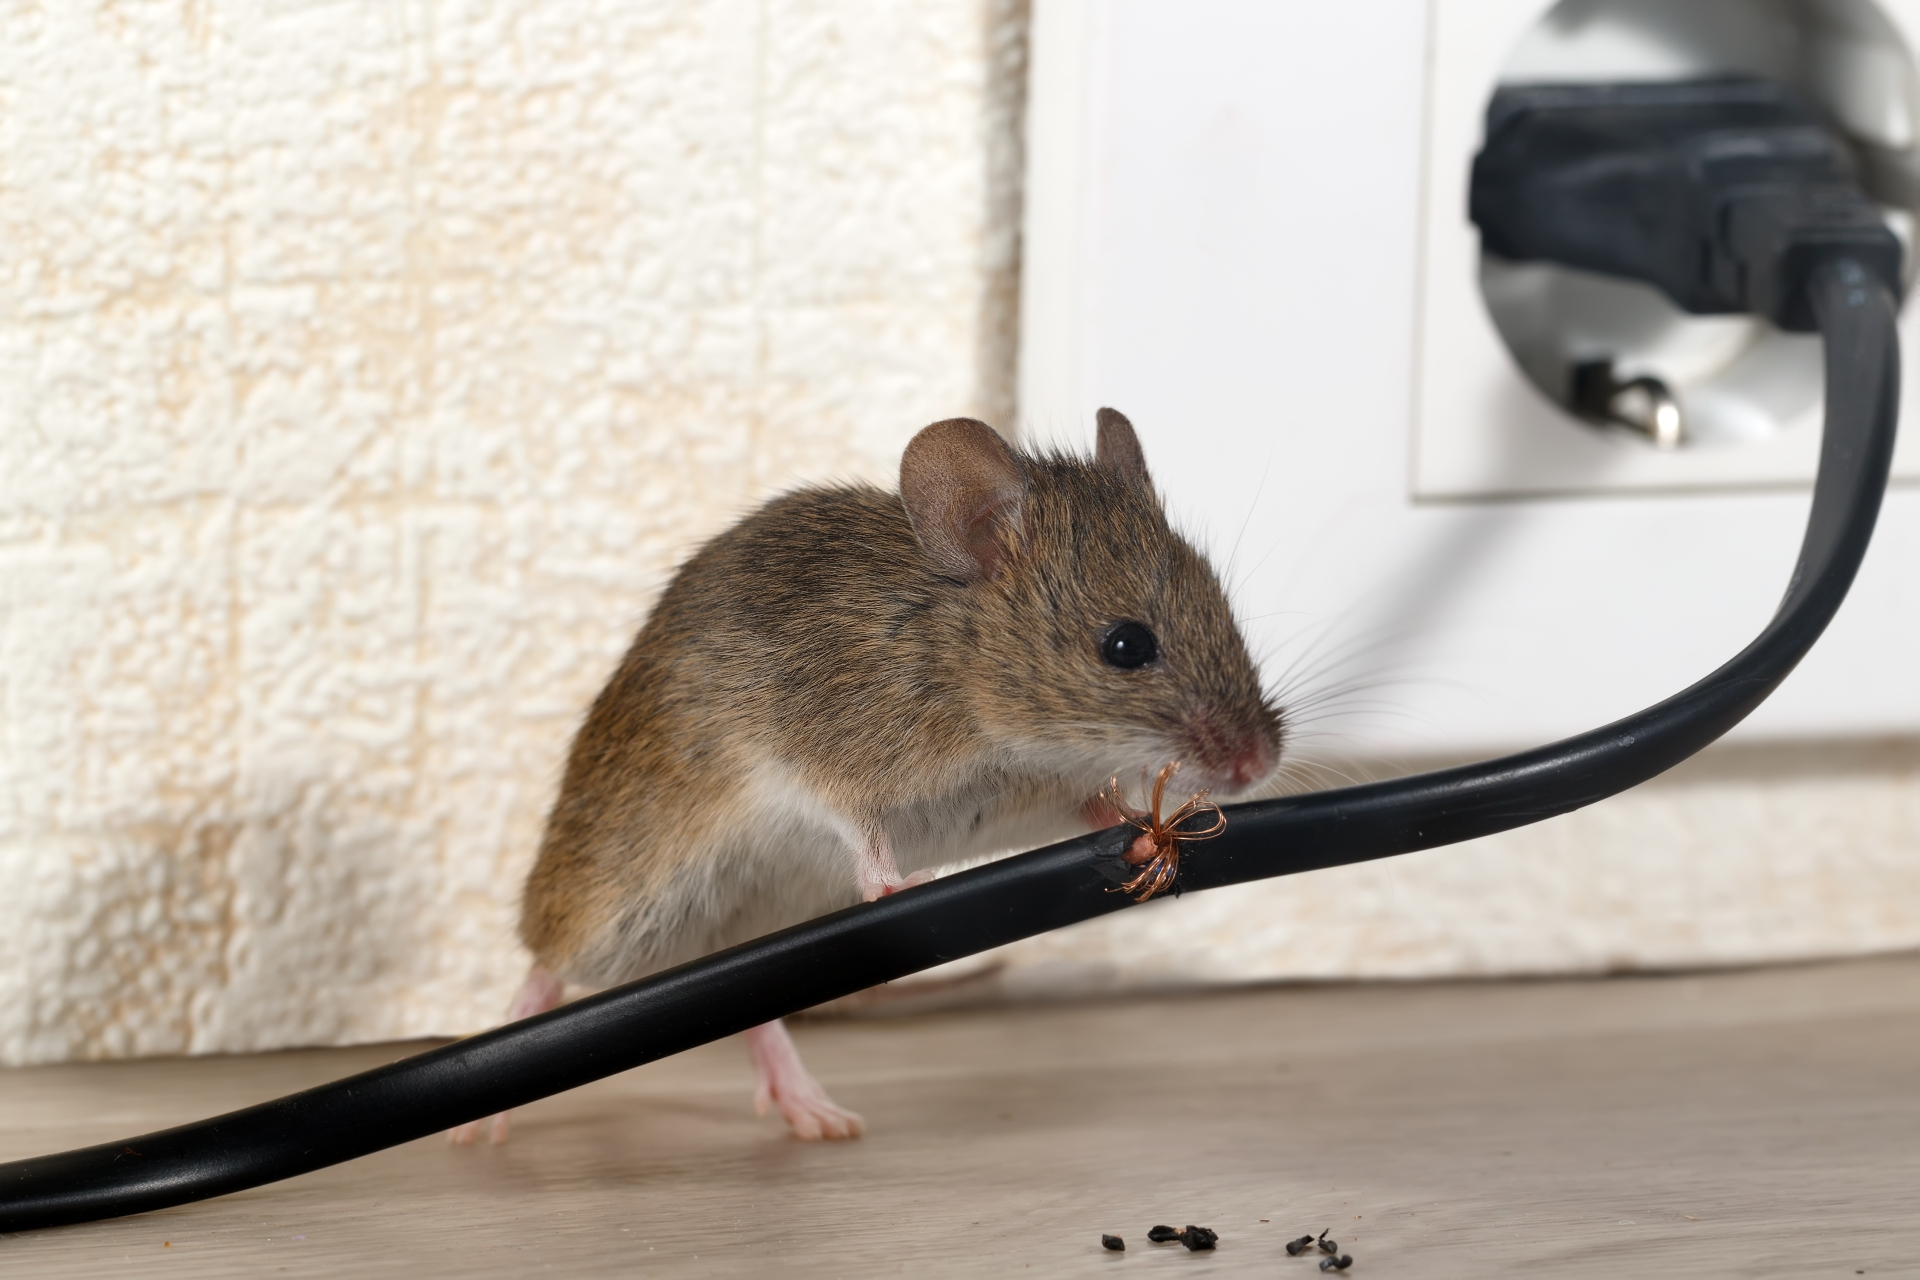 Mice Infestation, Pest Control in Belgravia, Westminster, SW1. Call Now 020 8166 9746